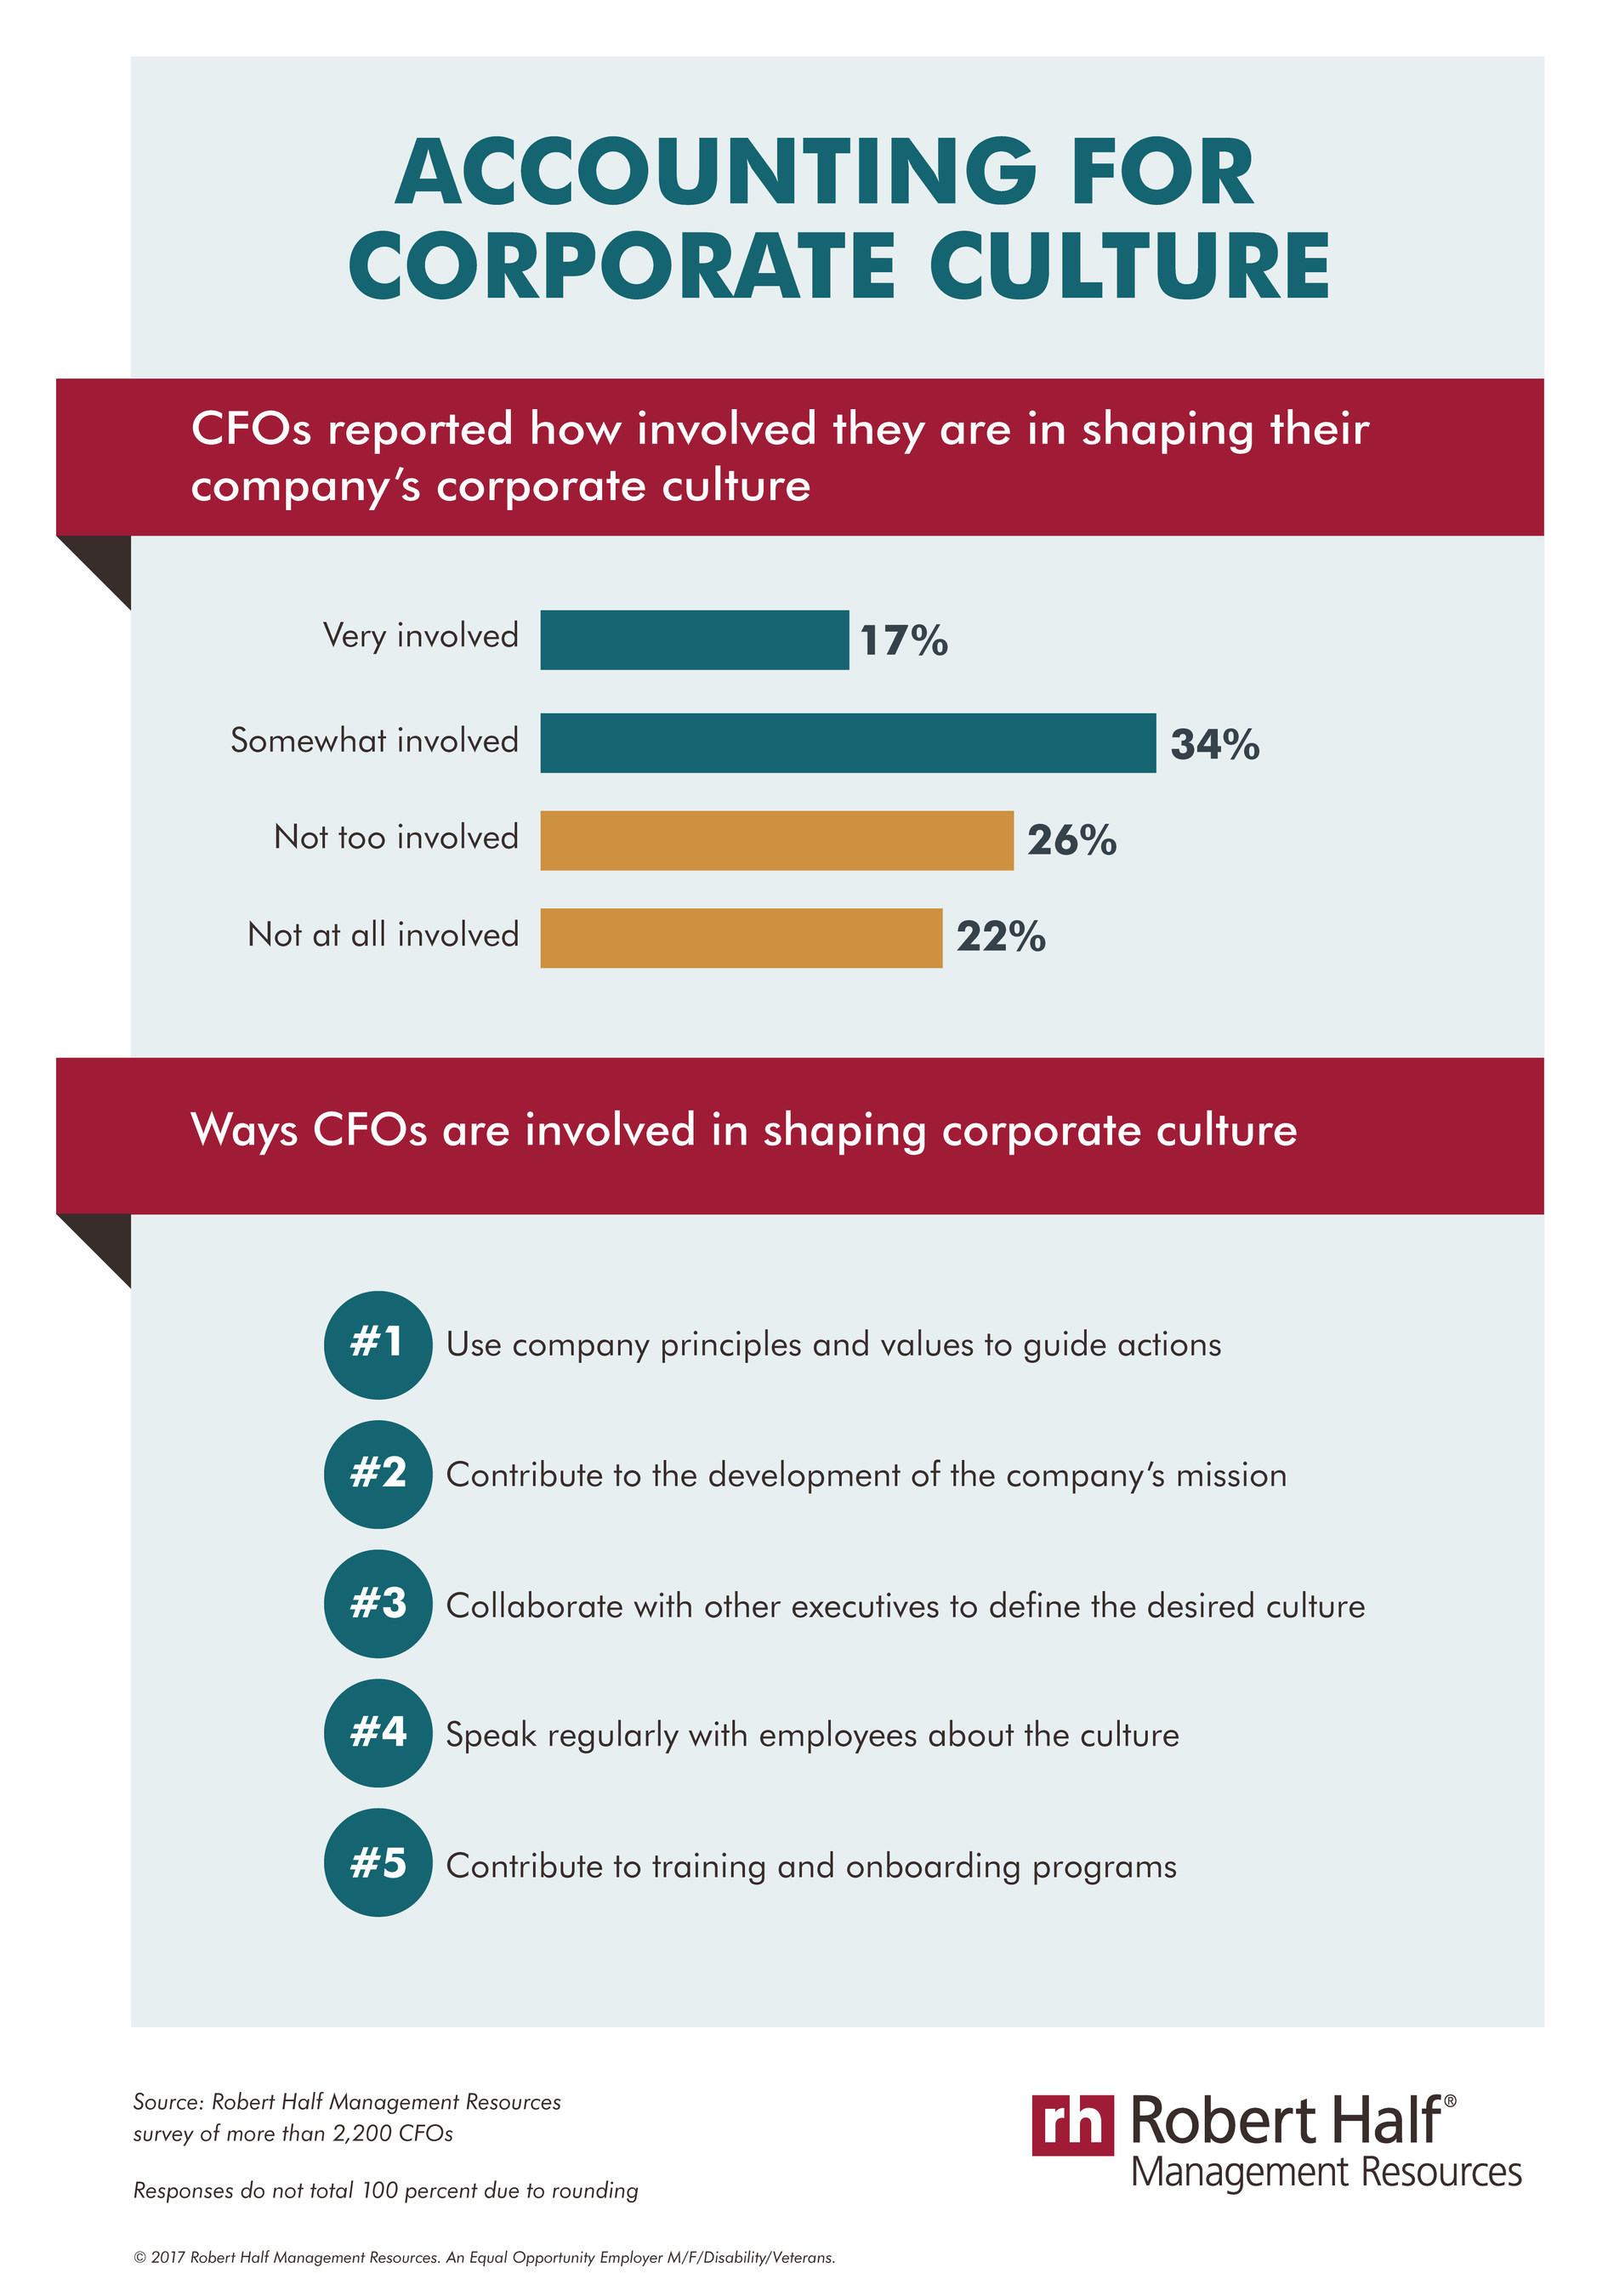 51 percent of CFOs are at least somewhat involved in shaping their company's corporate culture